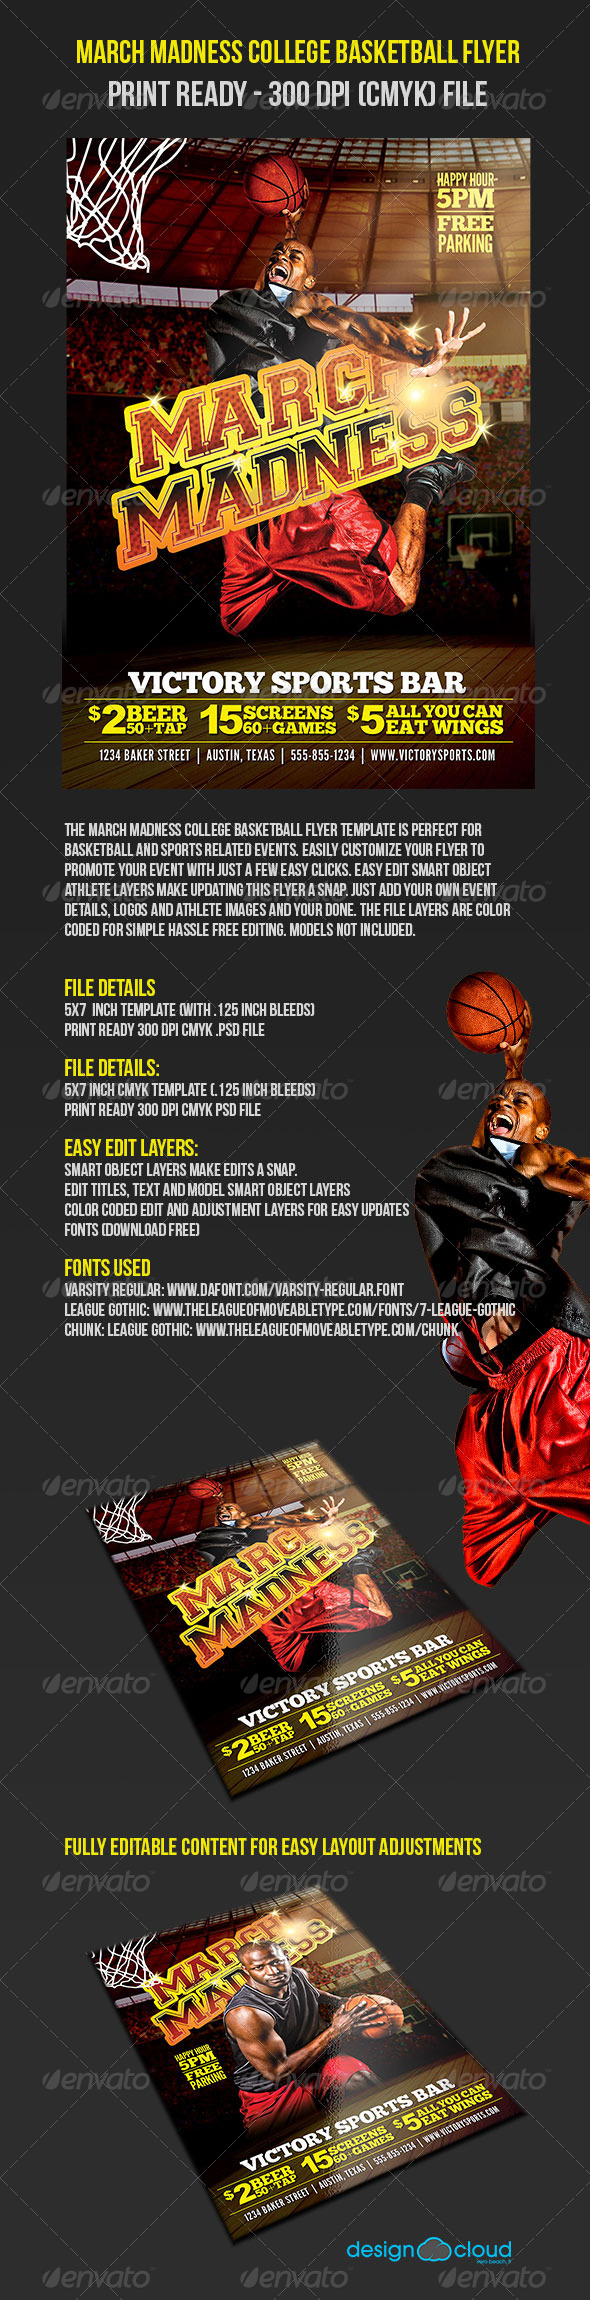 GraphicRiver March Madness College Basketball Flyer 5576416